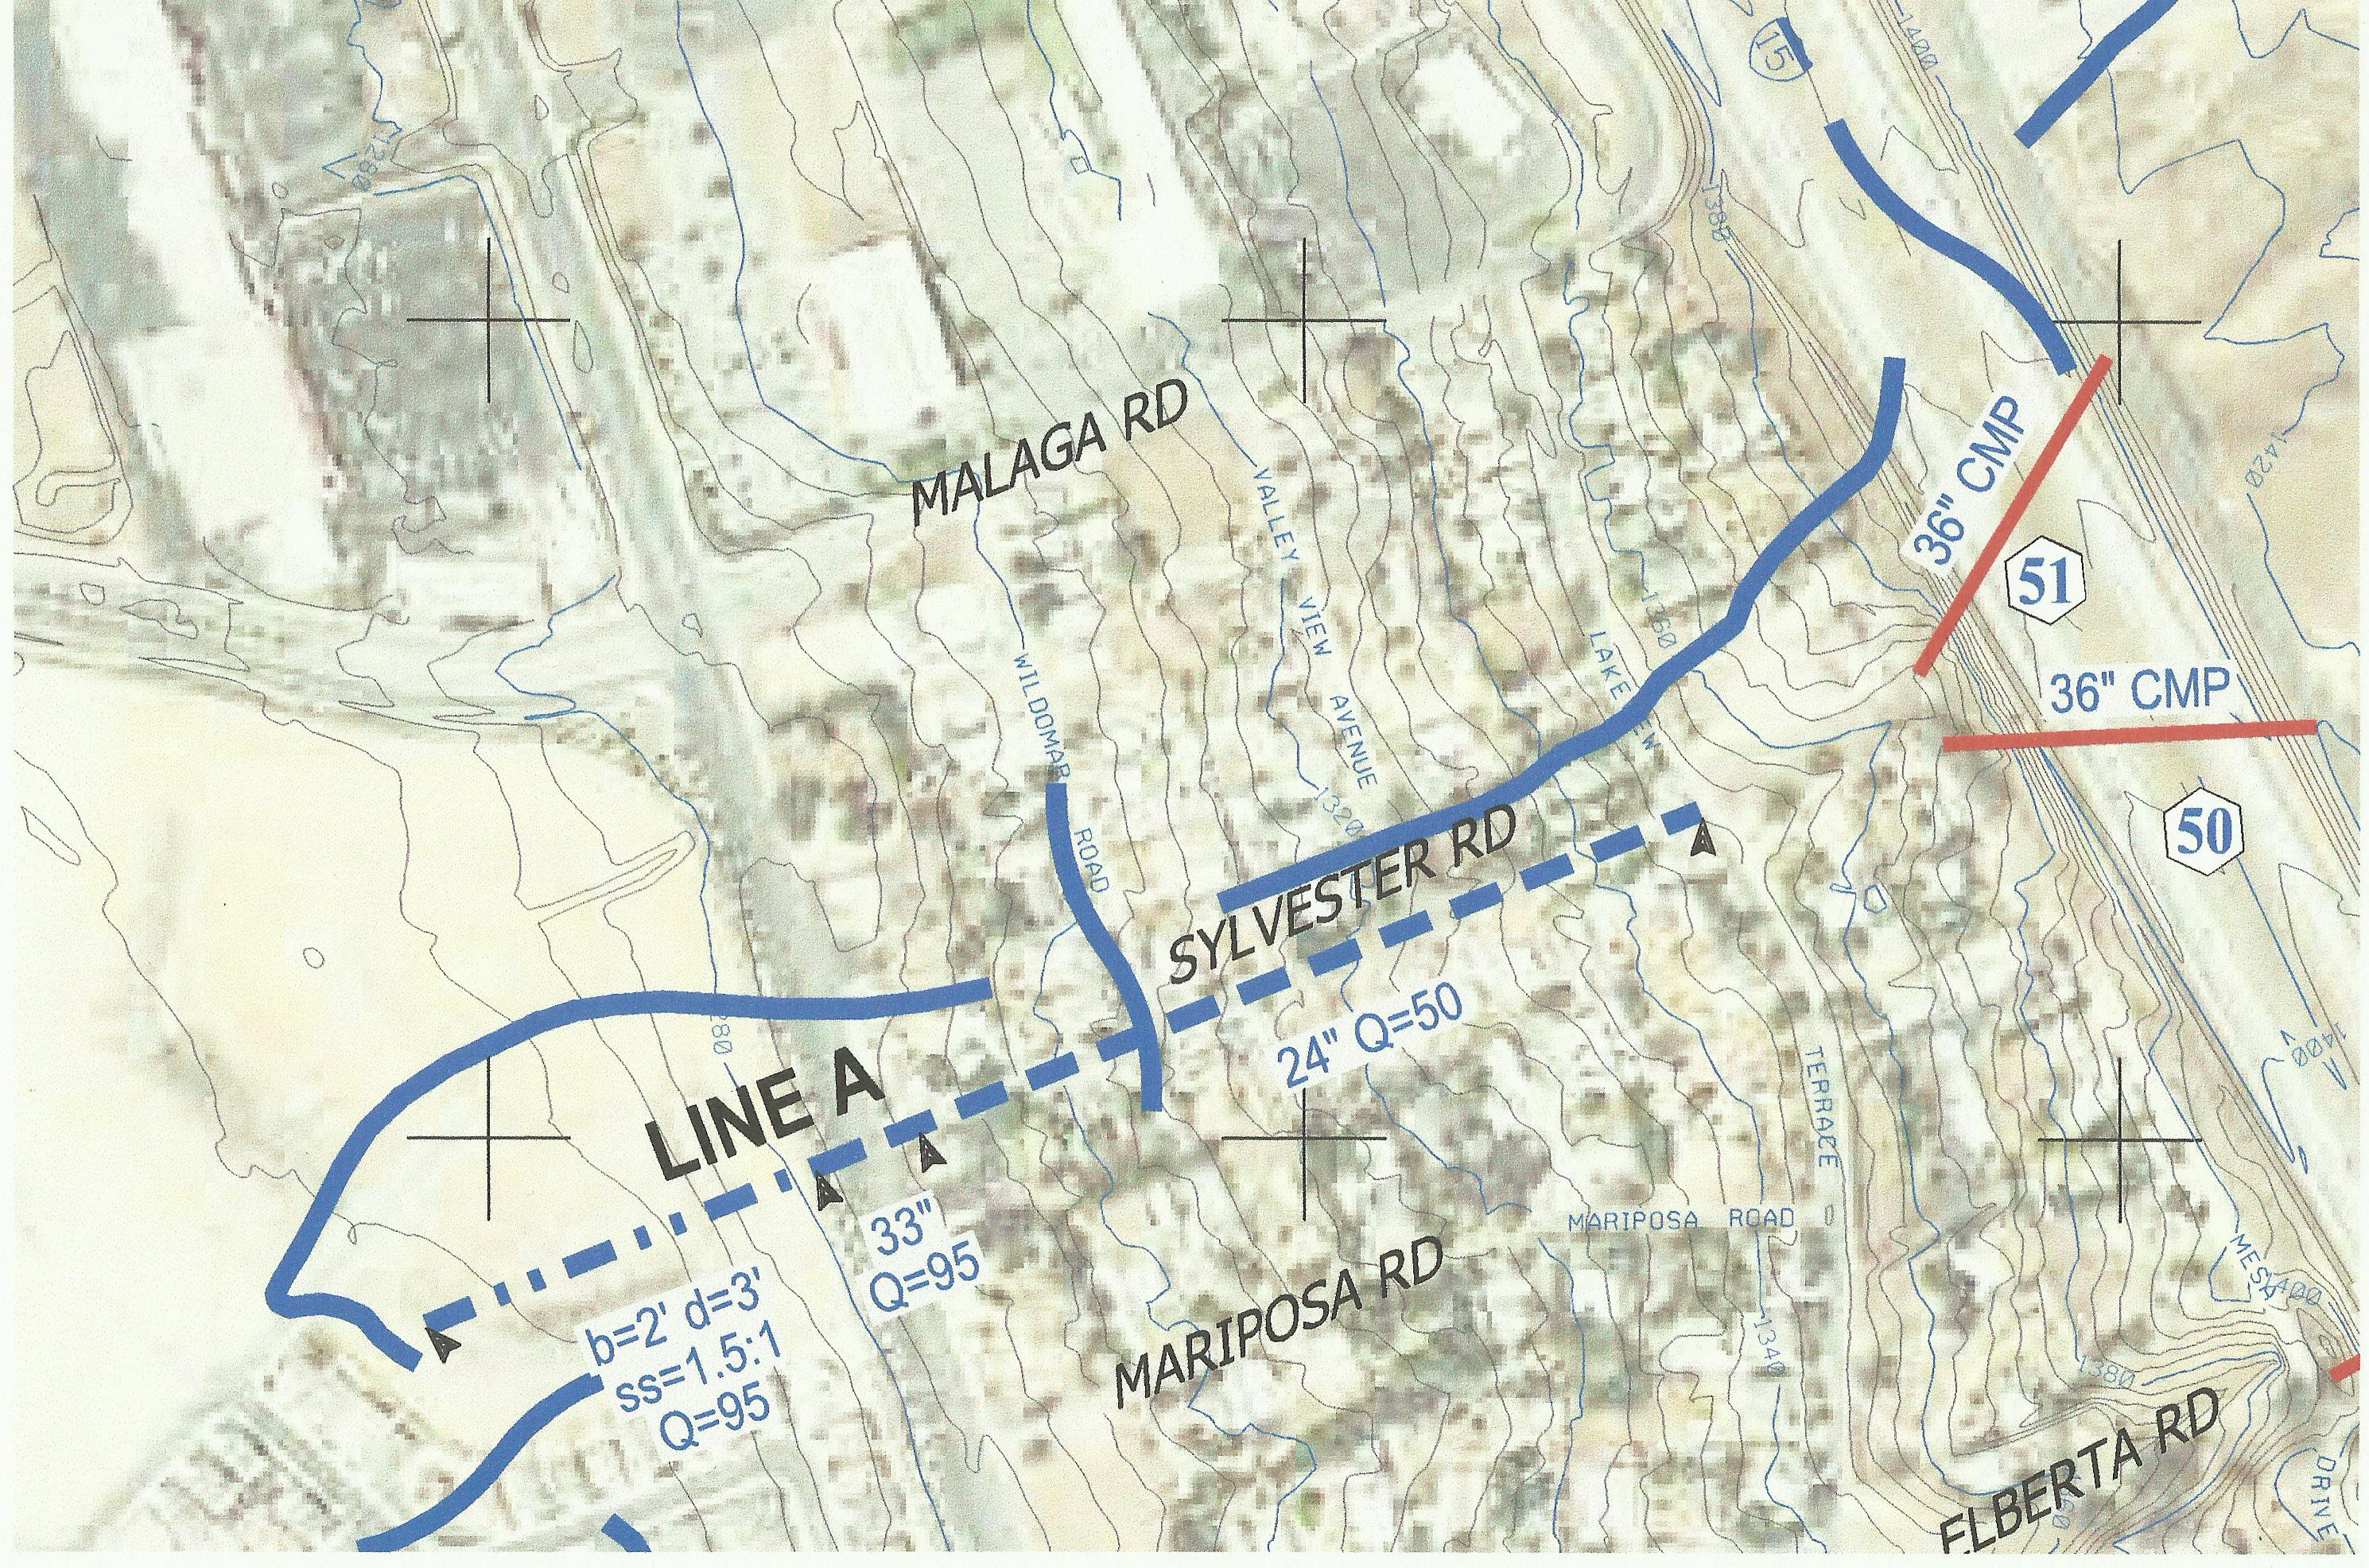 This is a digital map of Line A